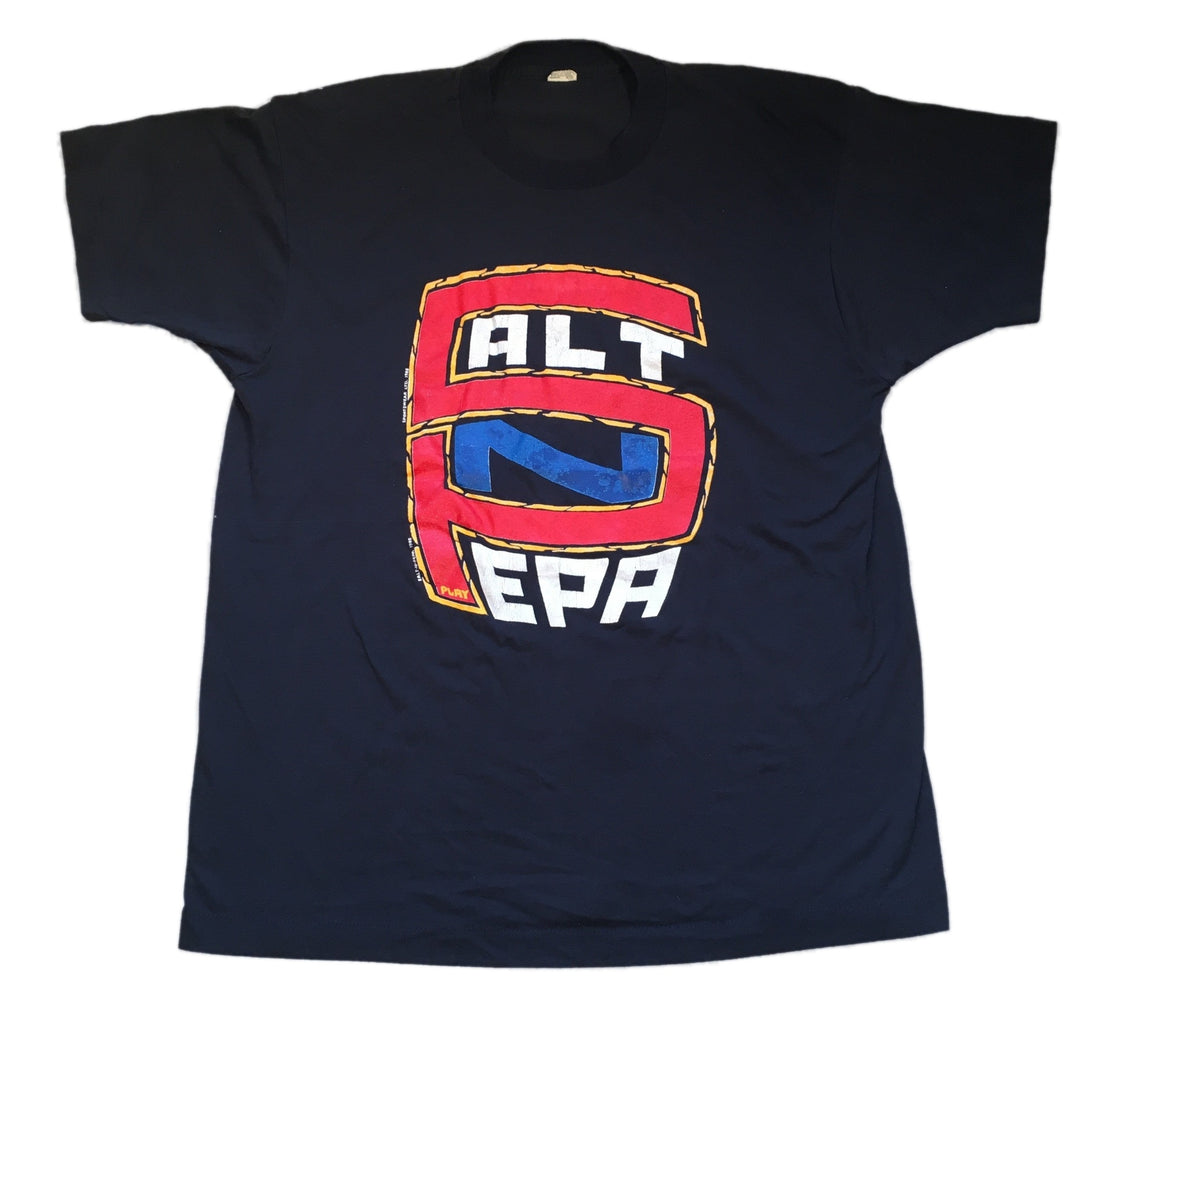 "Vintage Salt-N-Pepa ""Play"" T-Shirt - jointcustodydc"